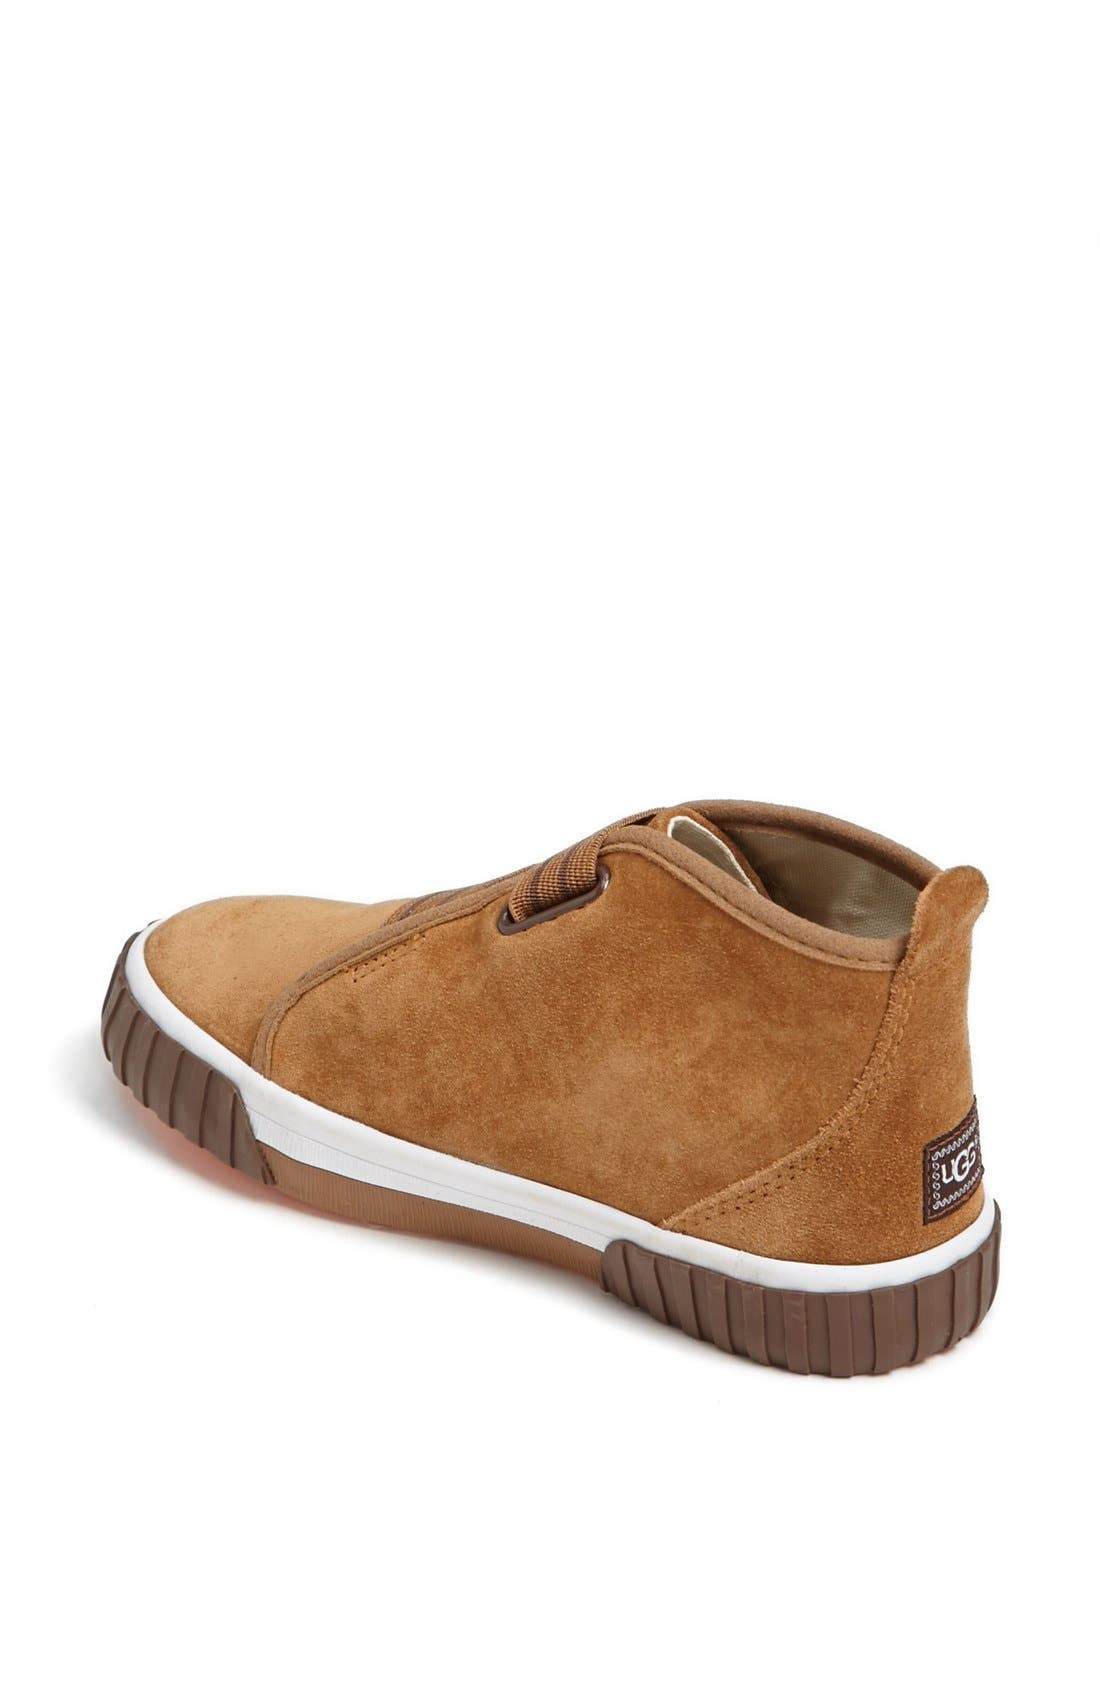 Alternate Image 2  - UGG® Australia 'Mycah' Sneaker (Toddler, Little Kid & Big Kid)